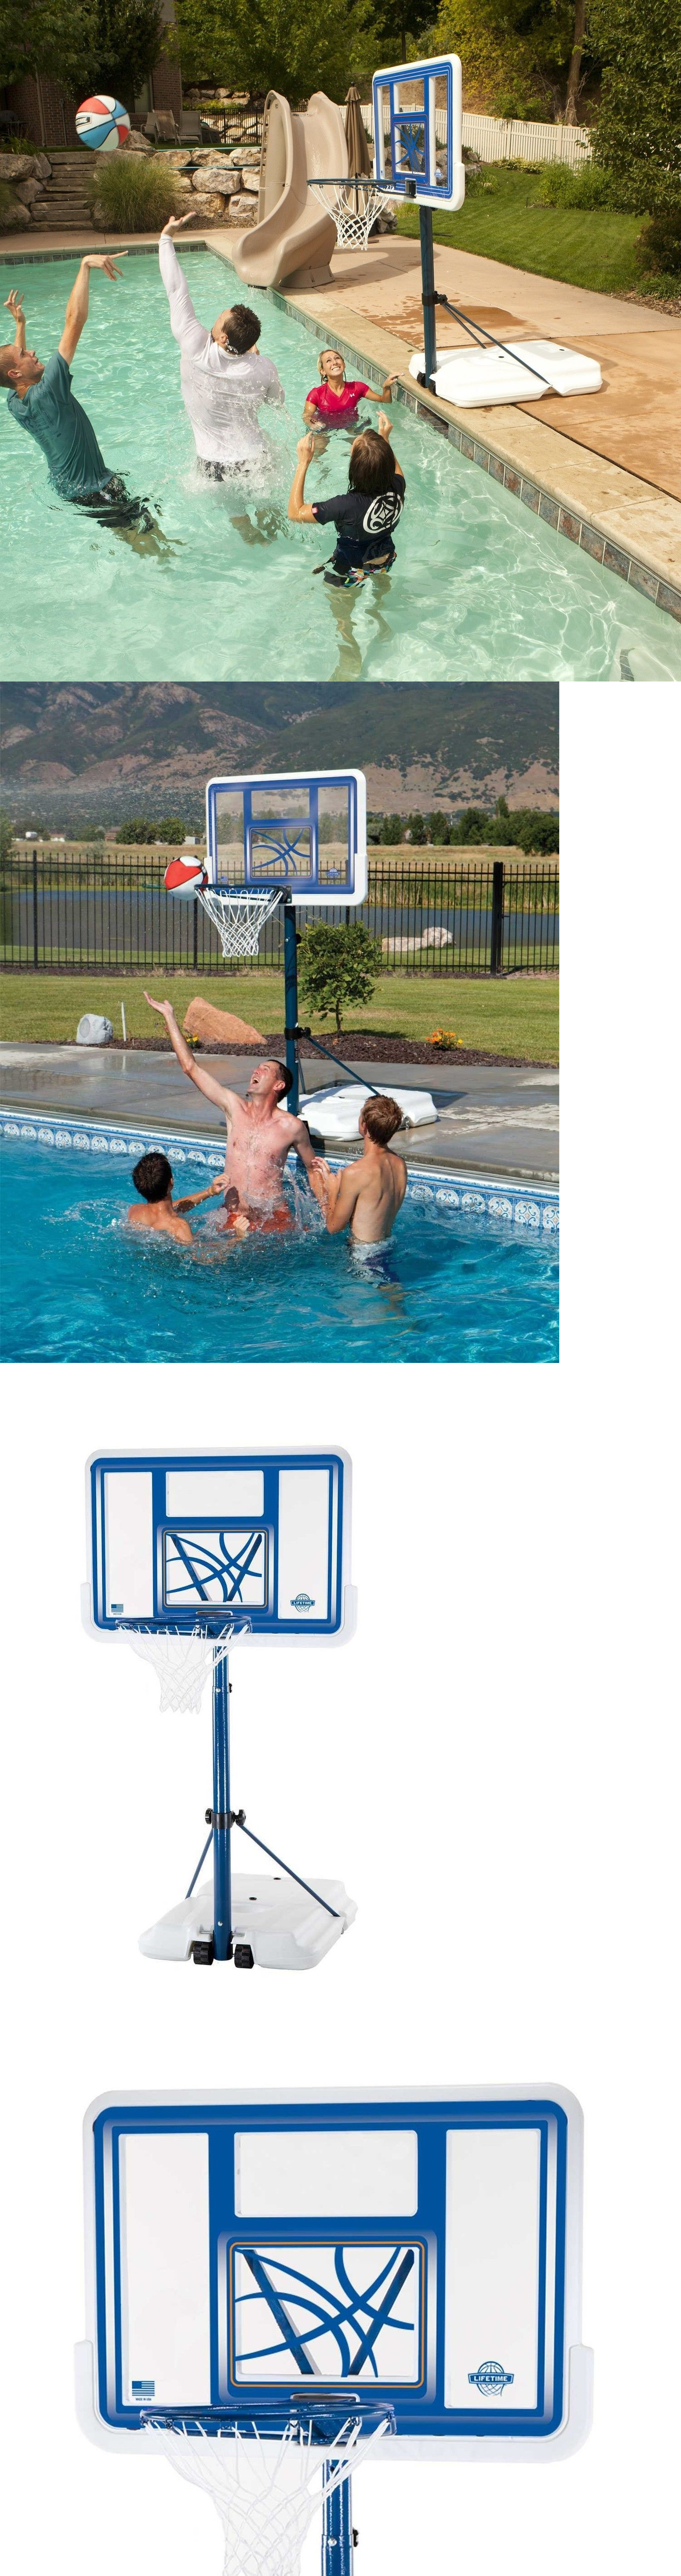 backboard systems 21196 pool basketball hoop goal net games sports